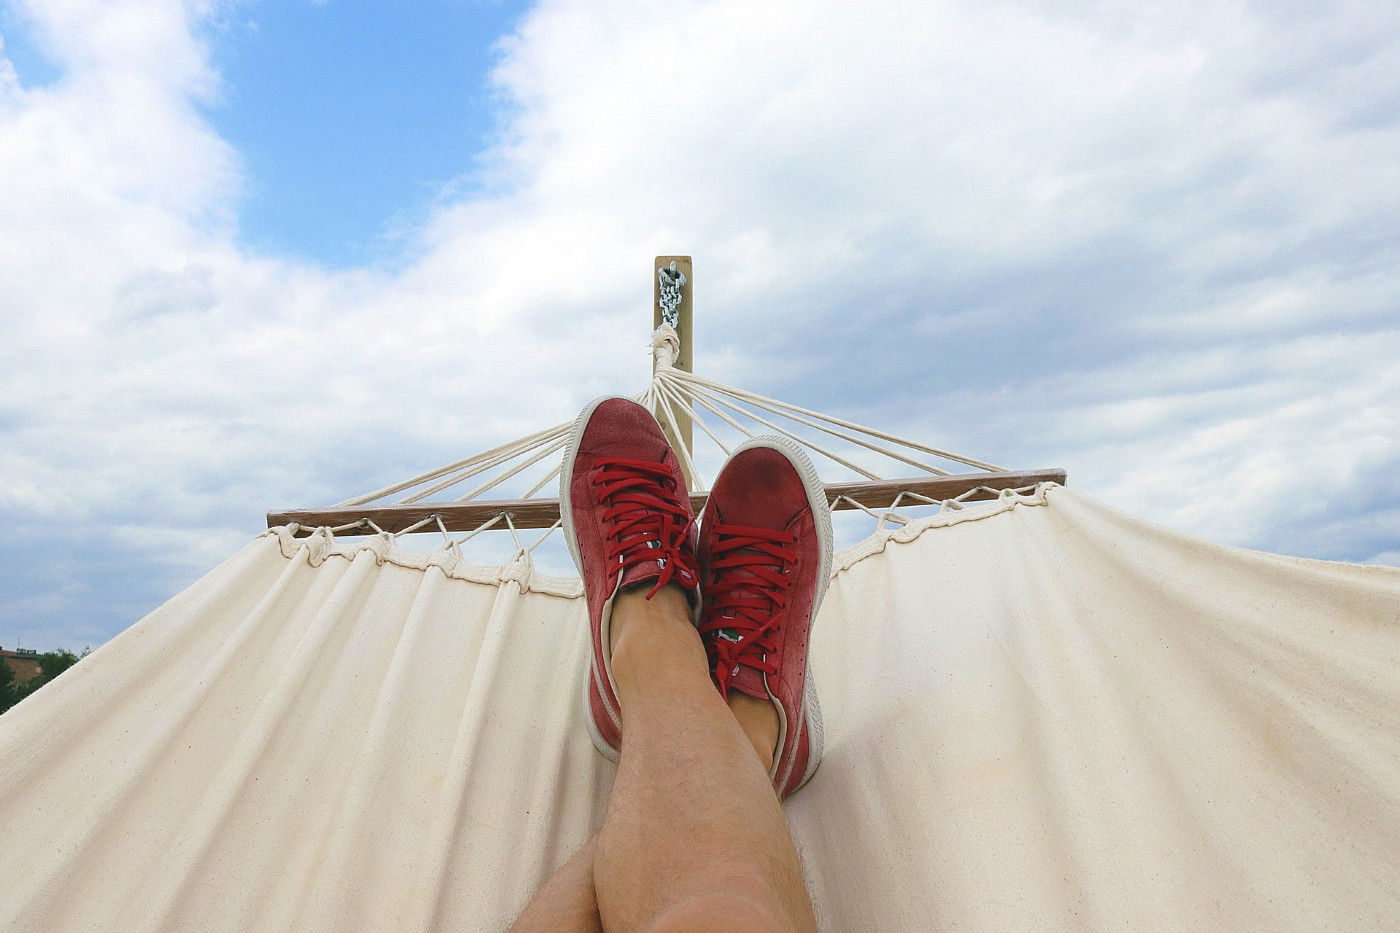 man-relaxing-in-hammock-with-red-sneakers-blue-cloudy-skies